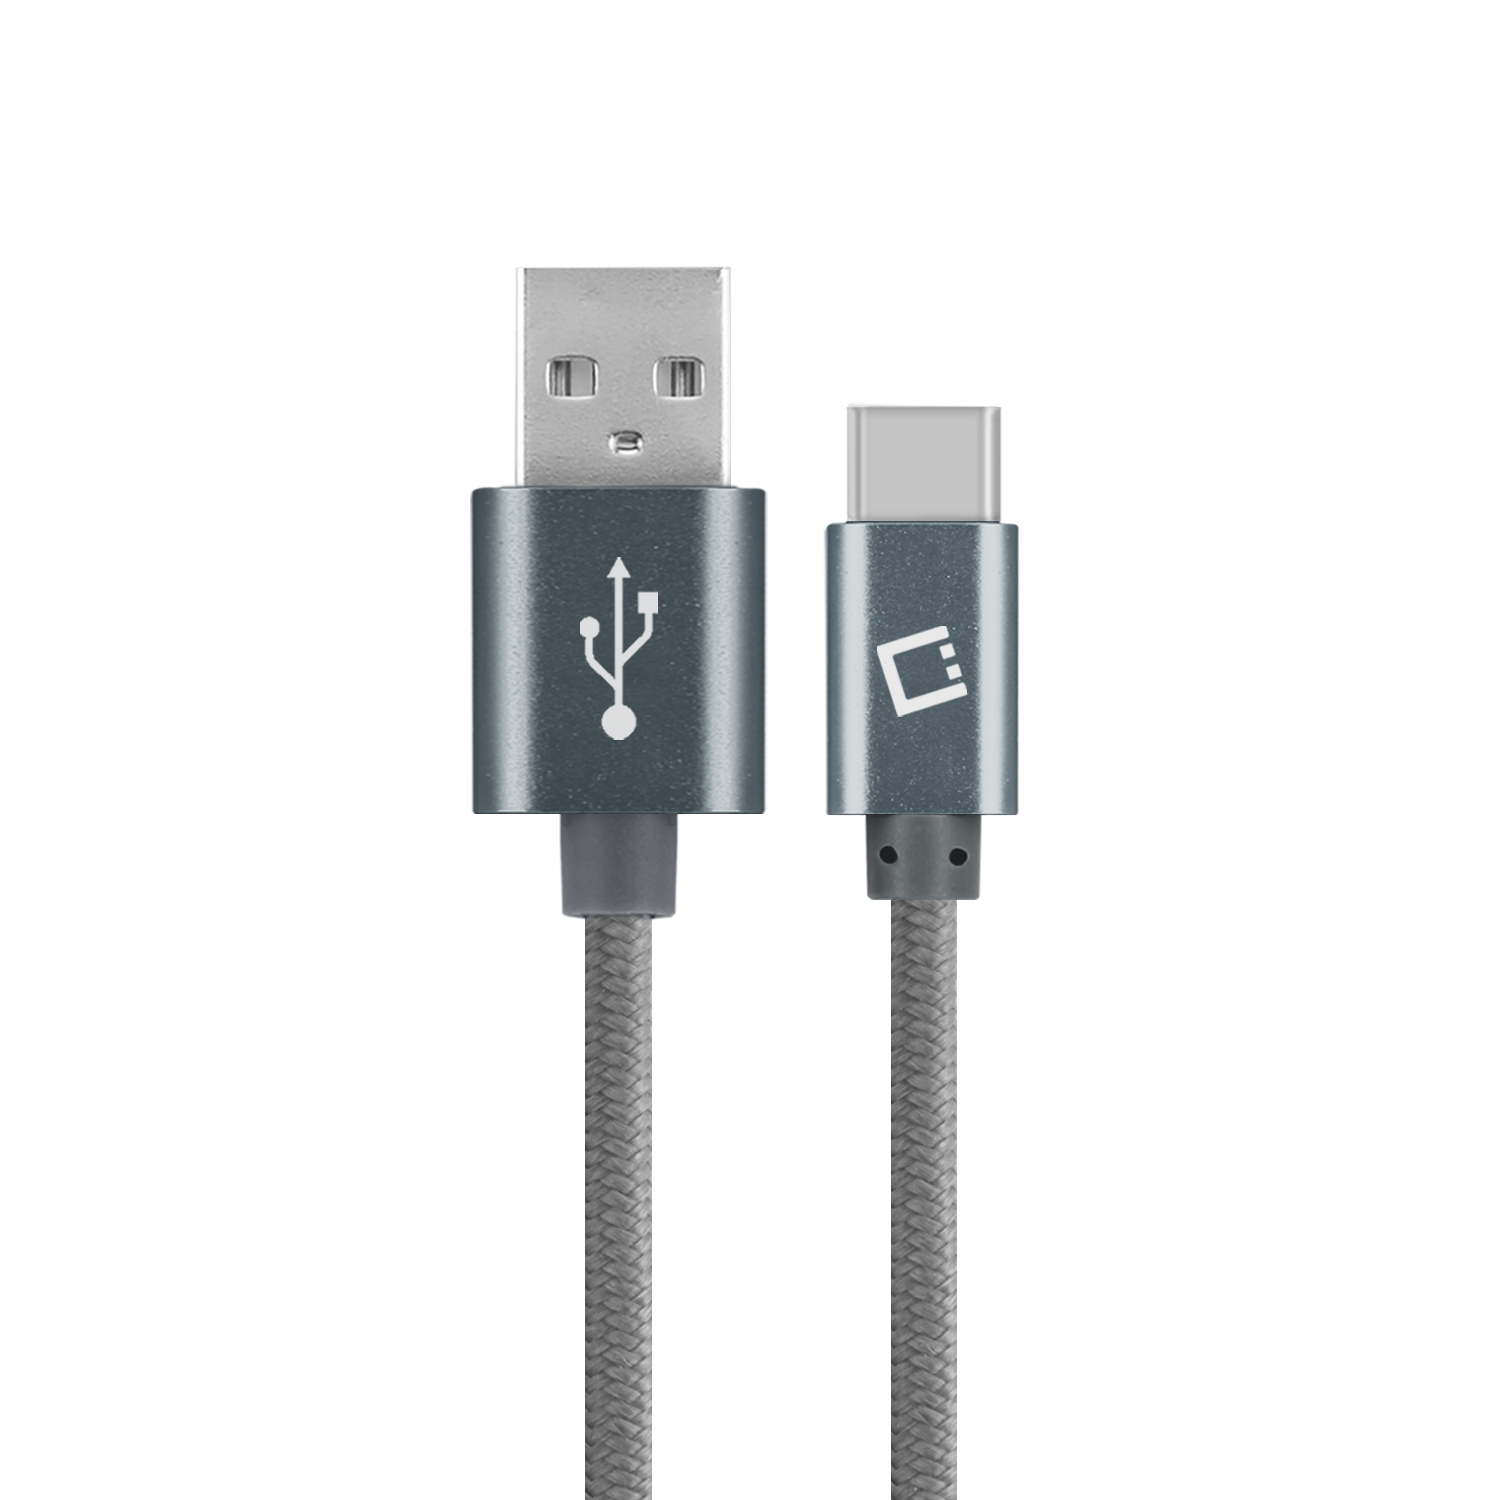 Samsung Galaxy A10e USB Type-C To Type-A Braided Data Power Cable Grey 4ft Braided